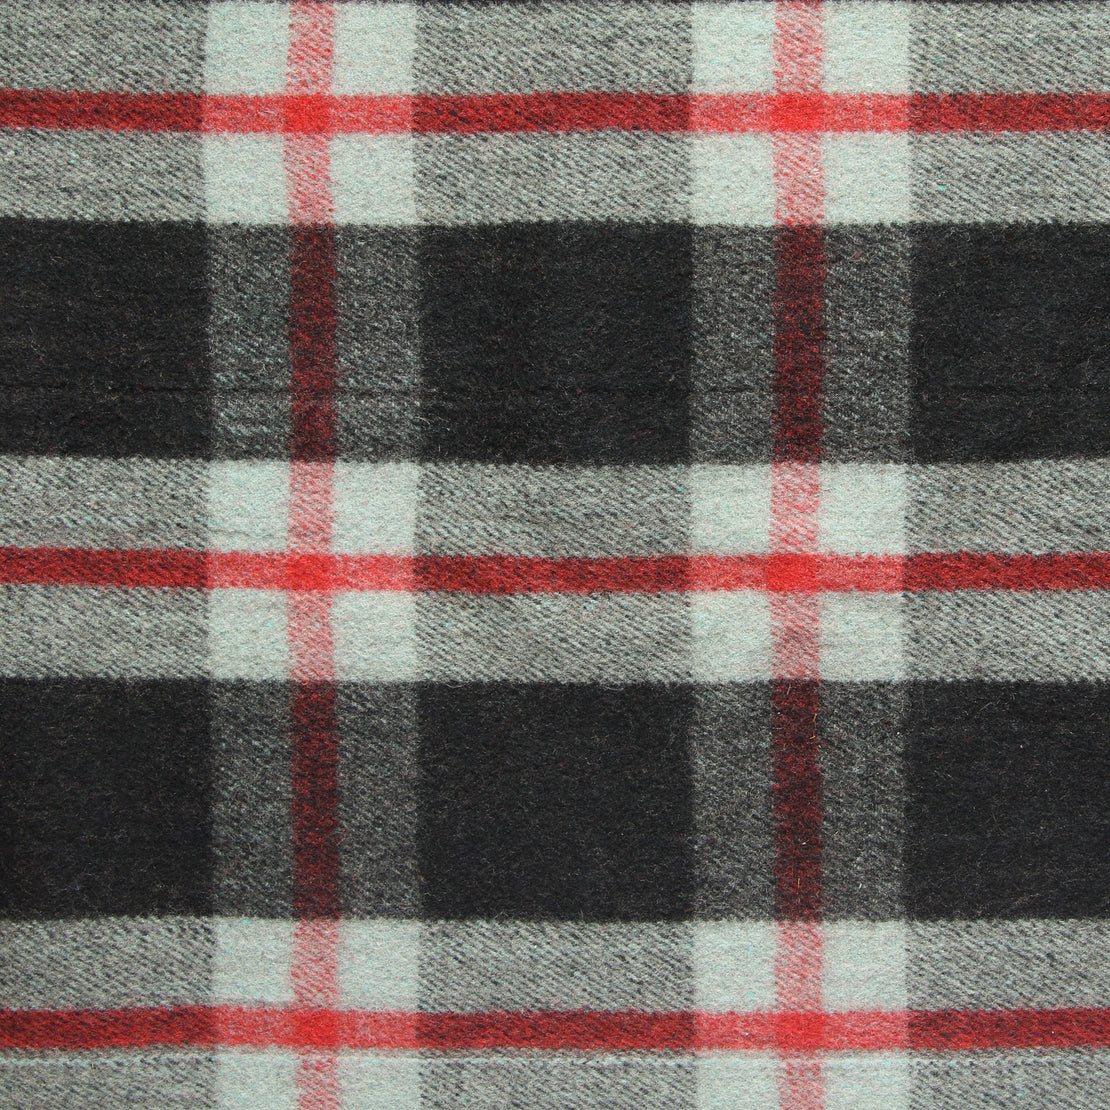 Vintage Indian Wool Plaid Blanket - Black/Red